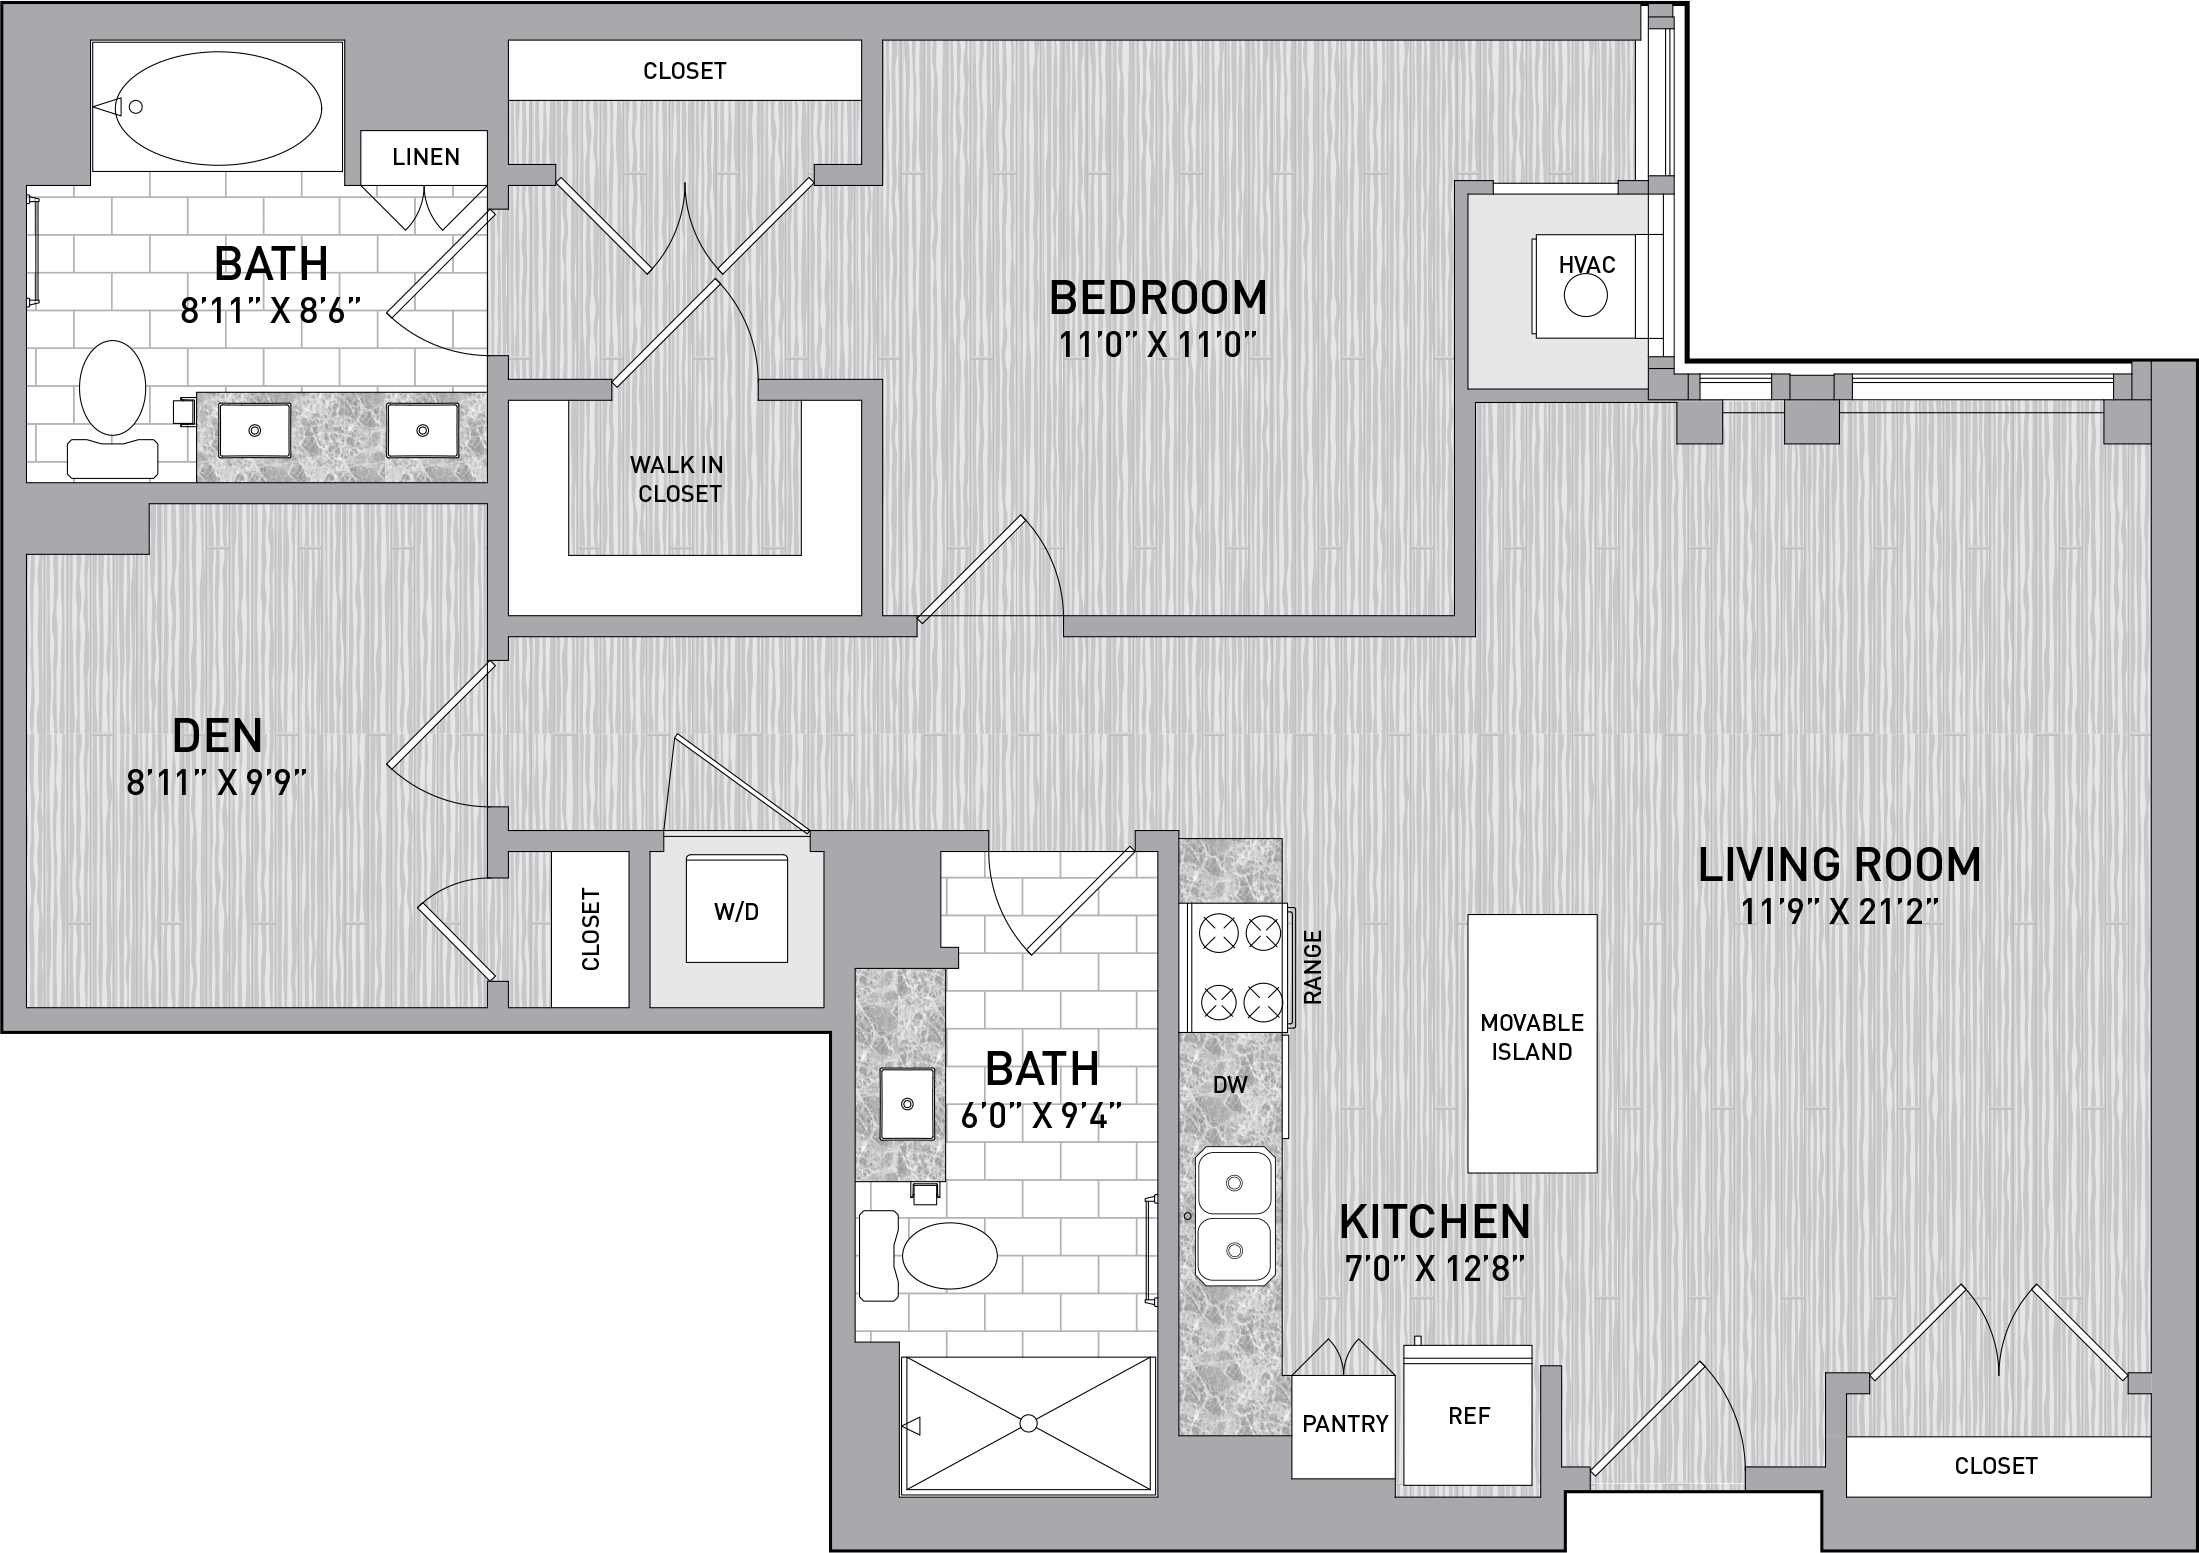 floorplan image of unit id 423